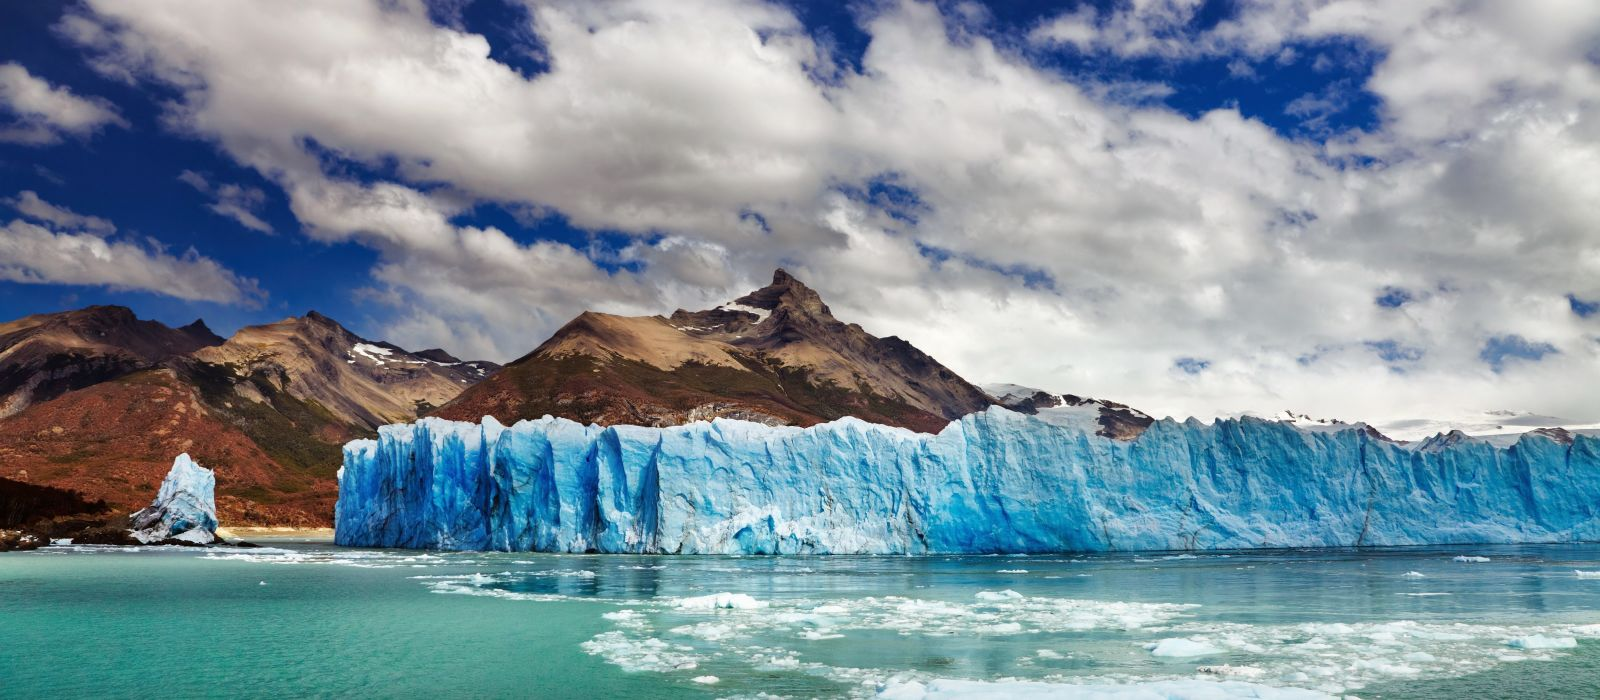 Glaciers, Wildlife and Waterfalls in Argentina Tour Trip 8